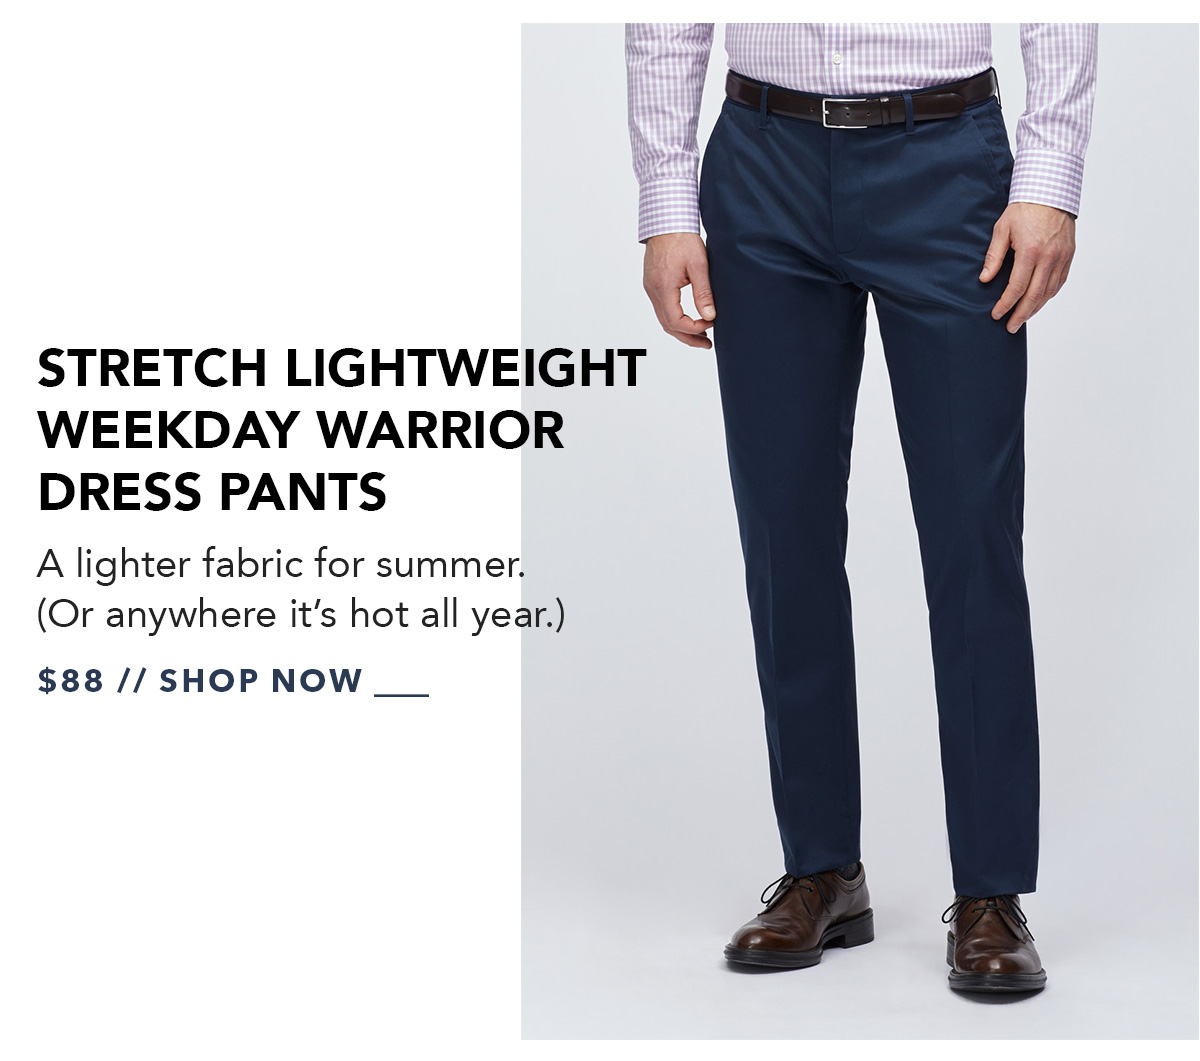 Stretch Lightweight Weekday Warrior Dress Pants: A lighter fabric for summer. (Or anywhere it's hot all year.) Available in up to 4 fits and 7 colors.